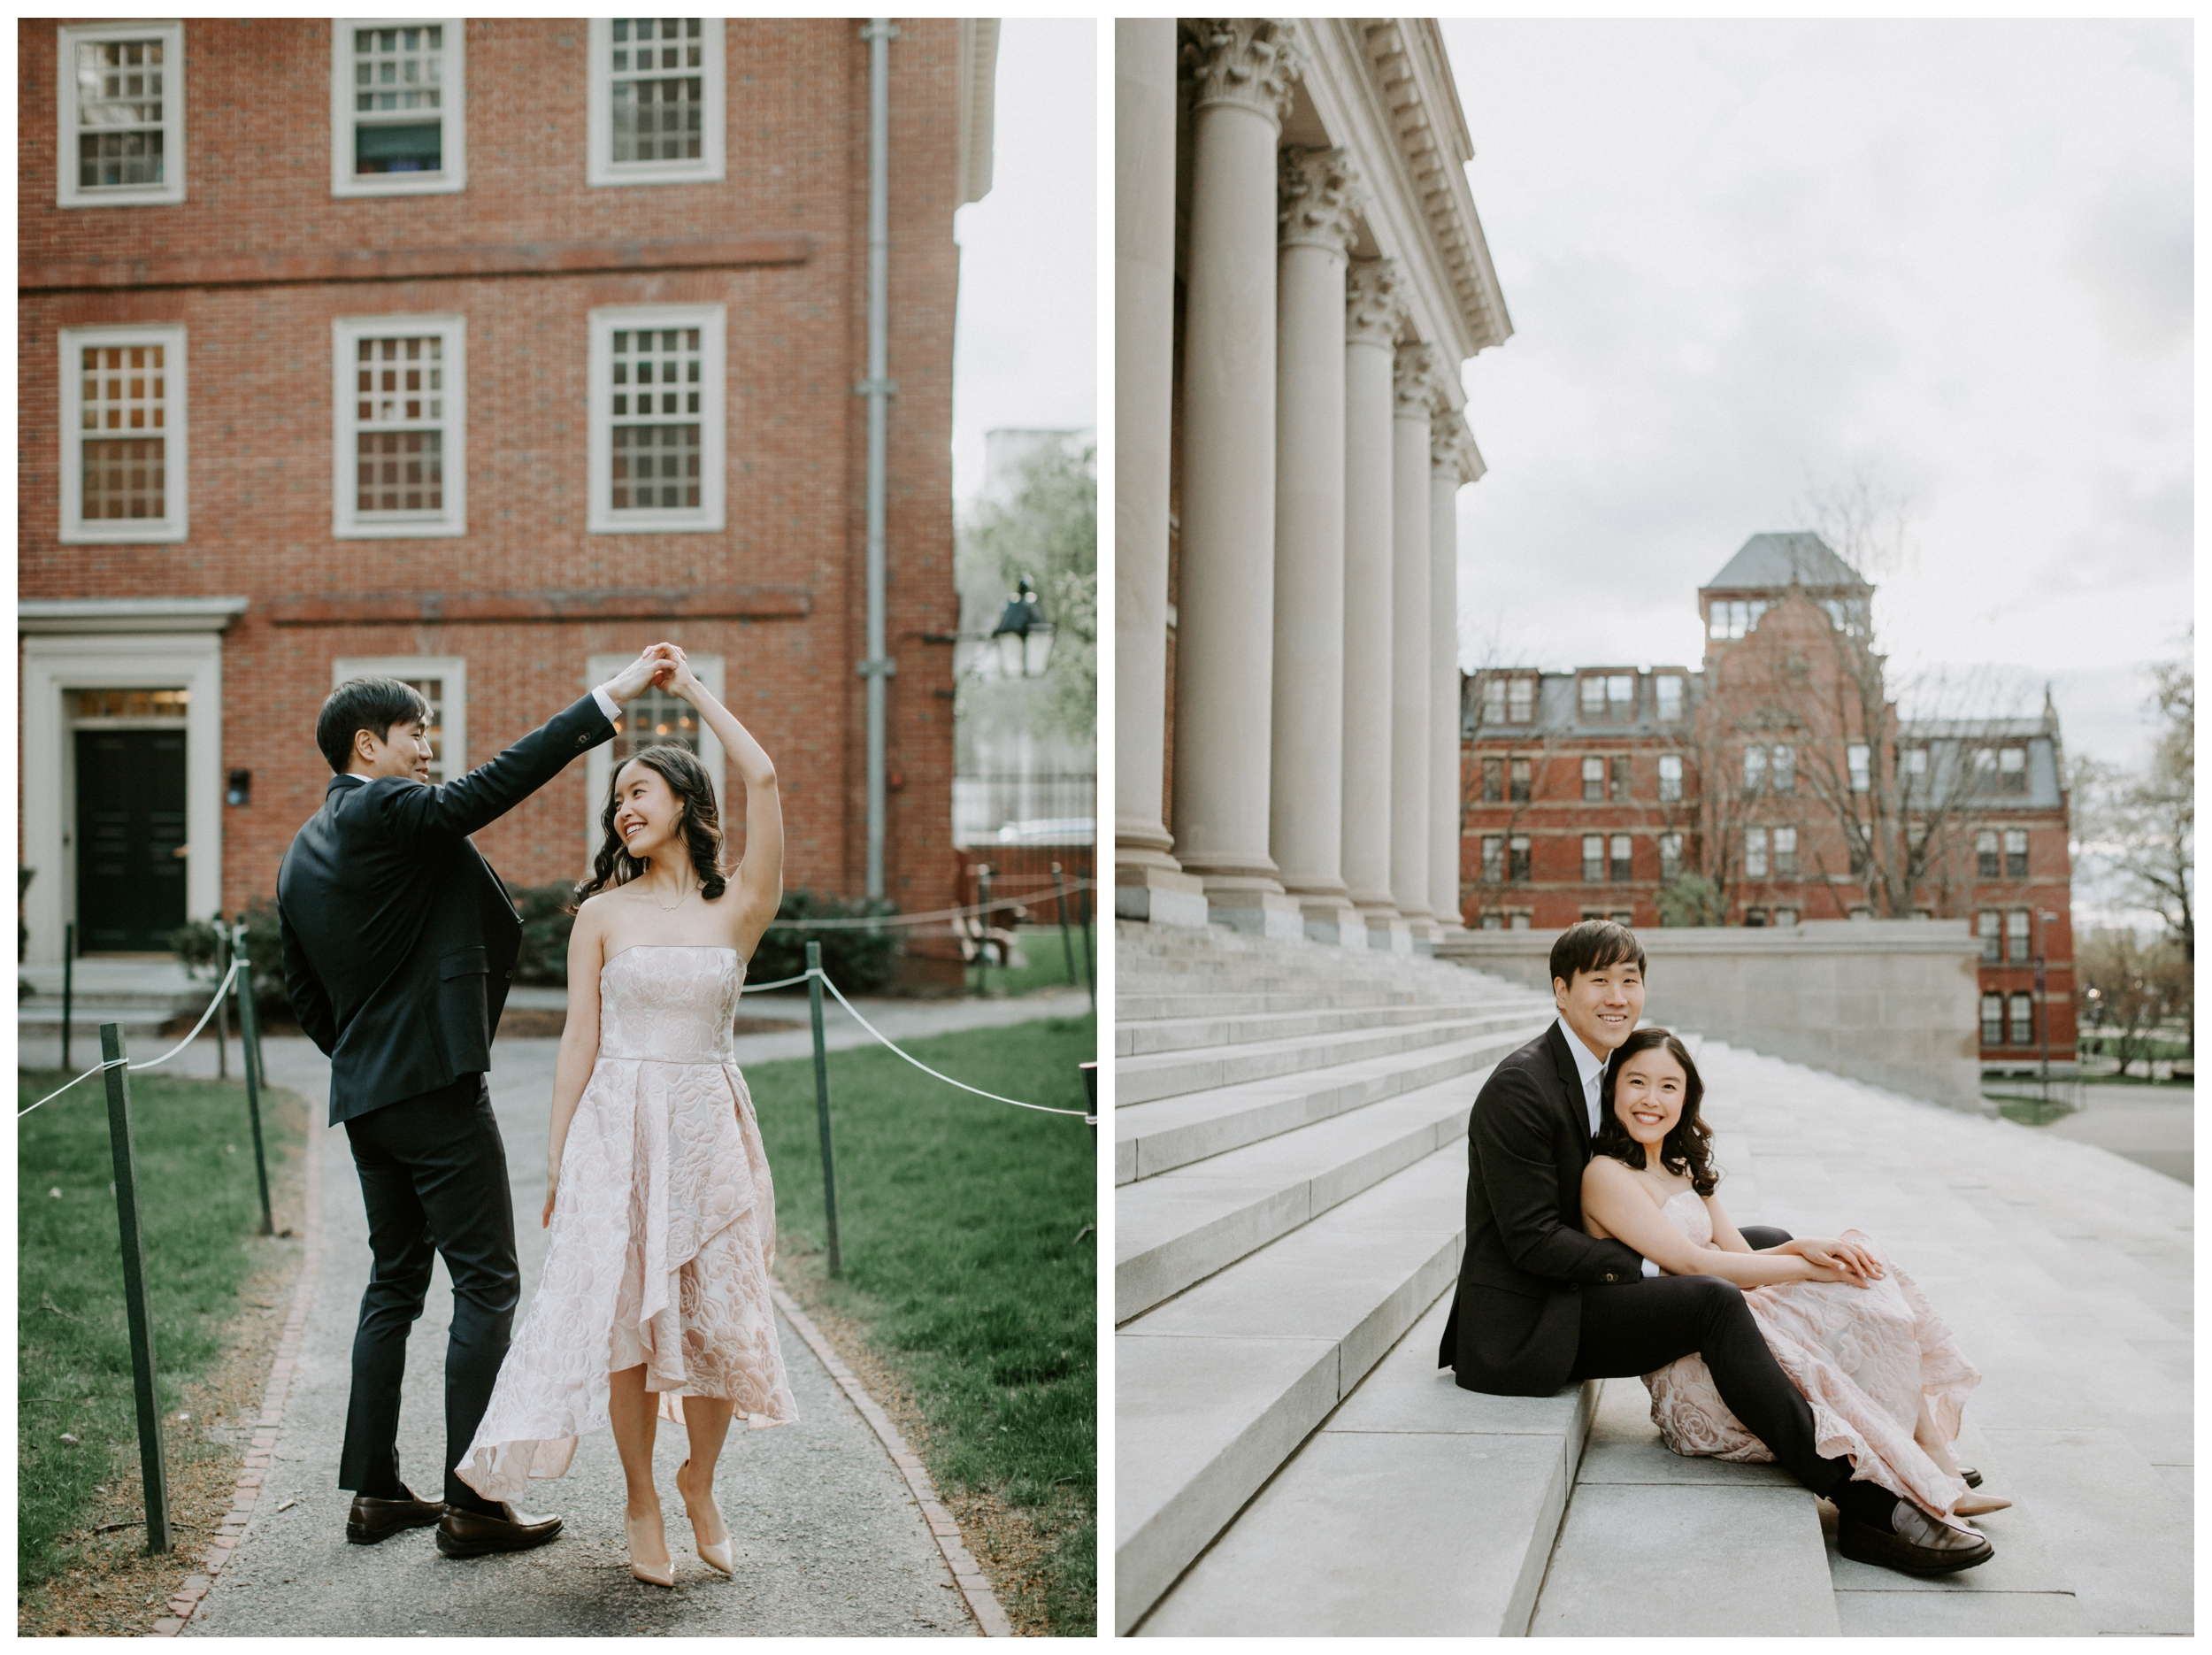 elegant-springtime-engagement-harvard-law-school-cambridge19.jpg